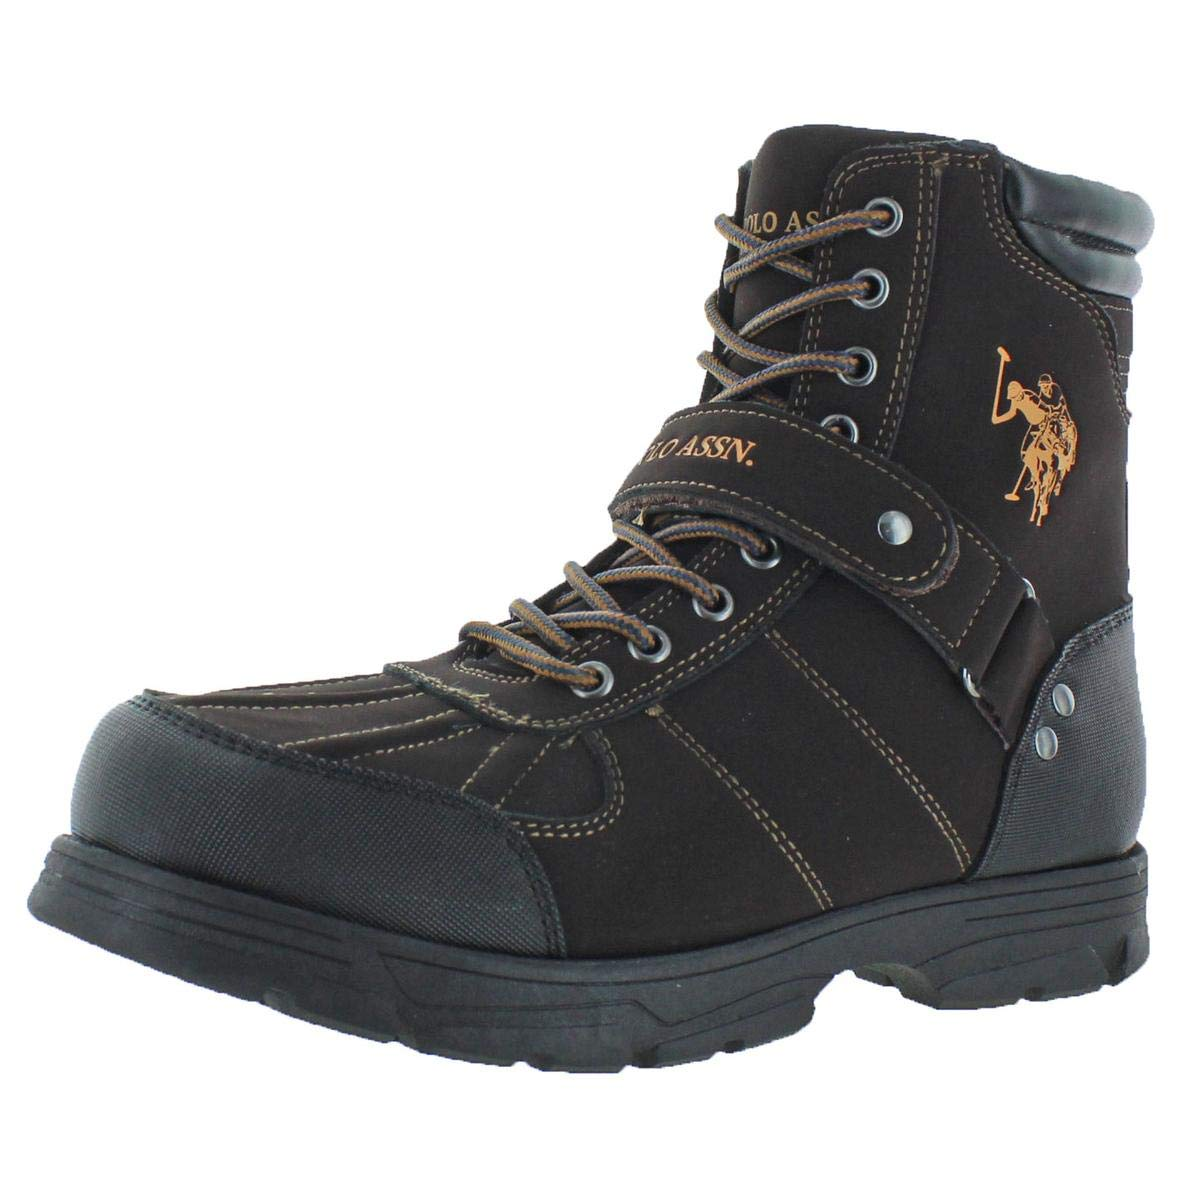 U.S. Polo Assn. Connor Men's Buckle Duck Toe Boots